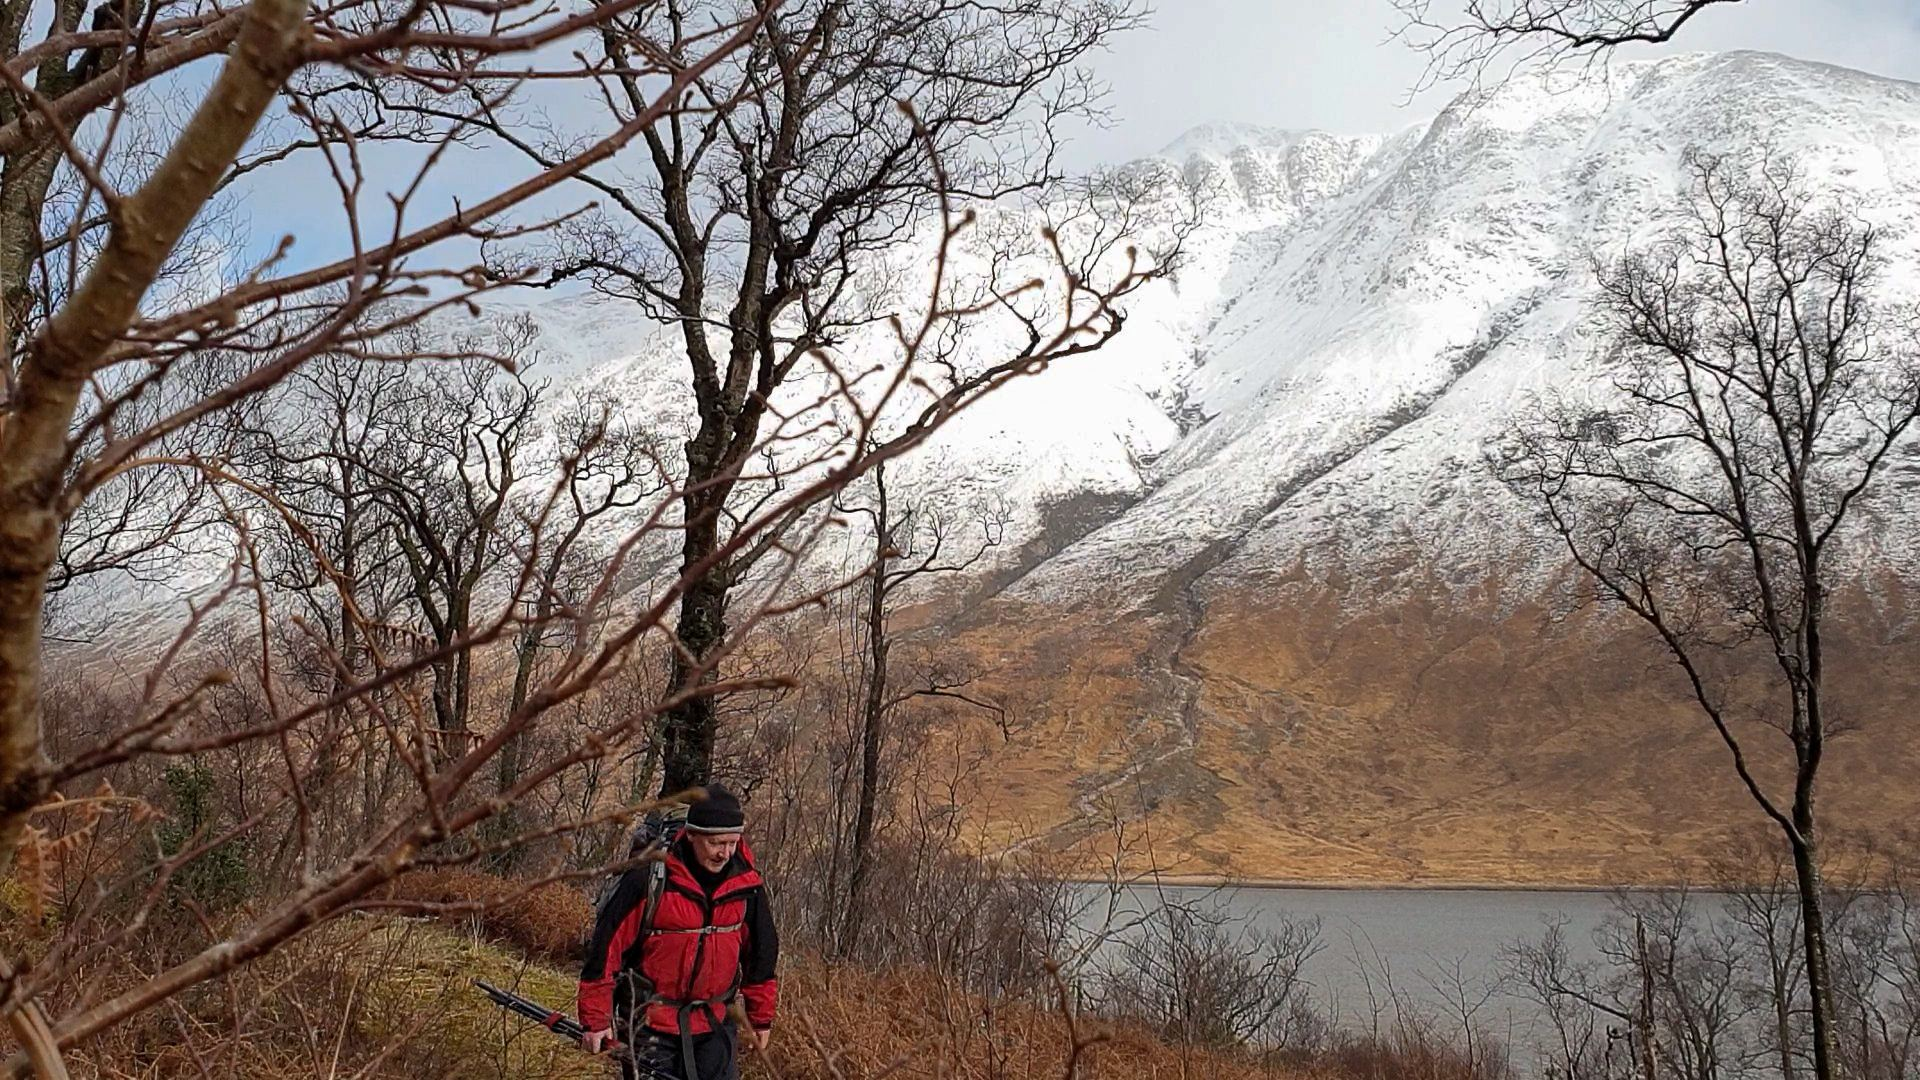 A snow covered Ben Starav offers a chilly backdrop to my hike along Loch Etive